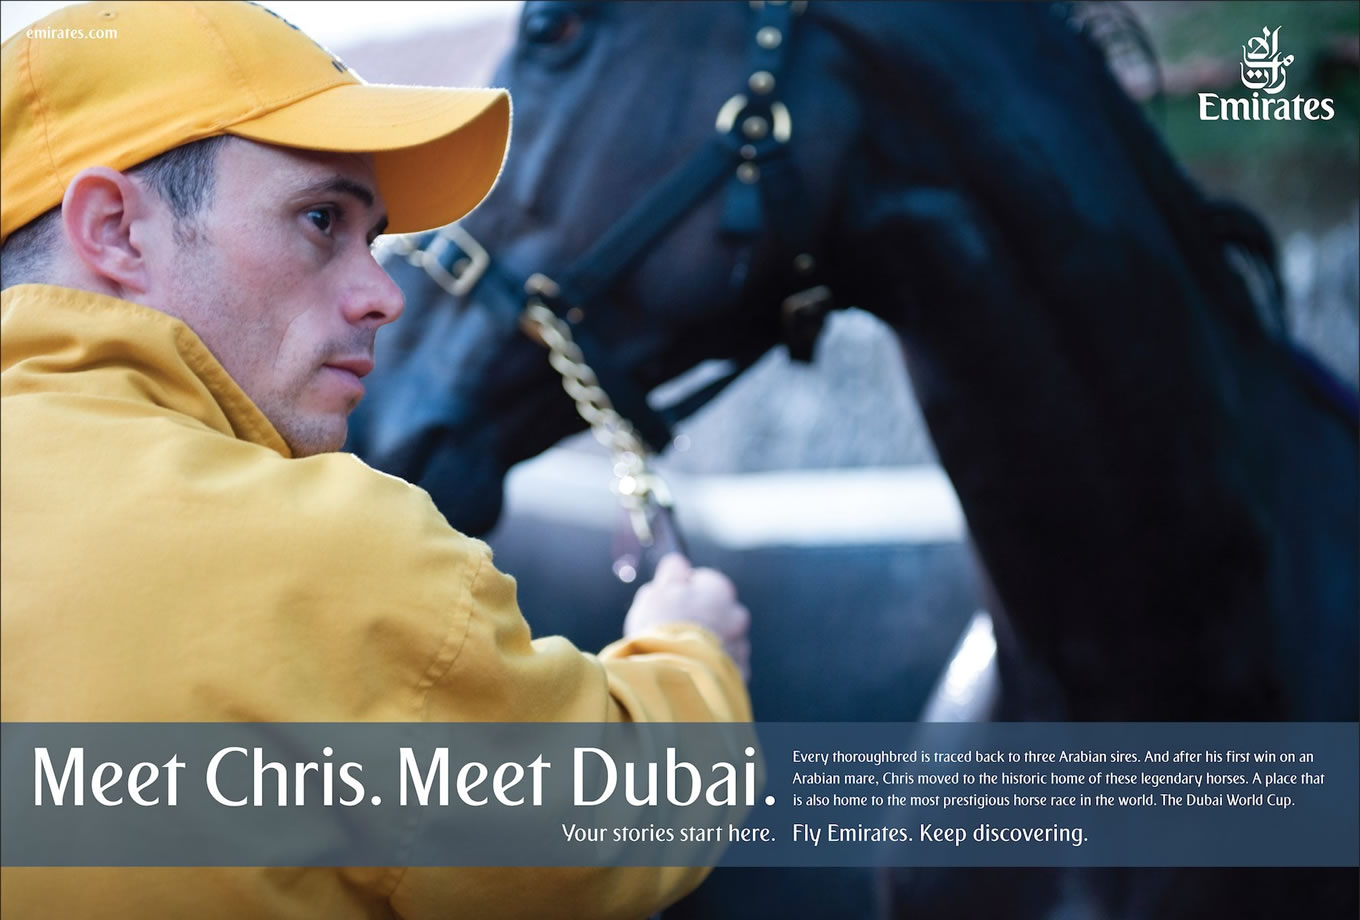 Meet Chris, Meet Dubai Advertising Campaign by Emirates